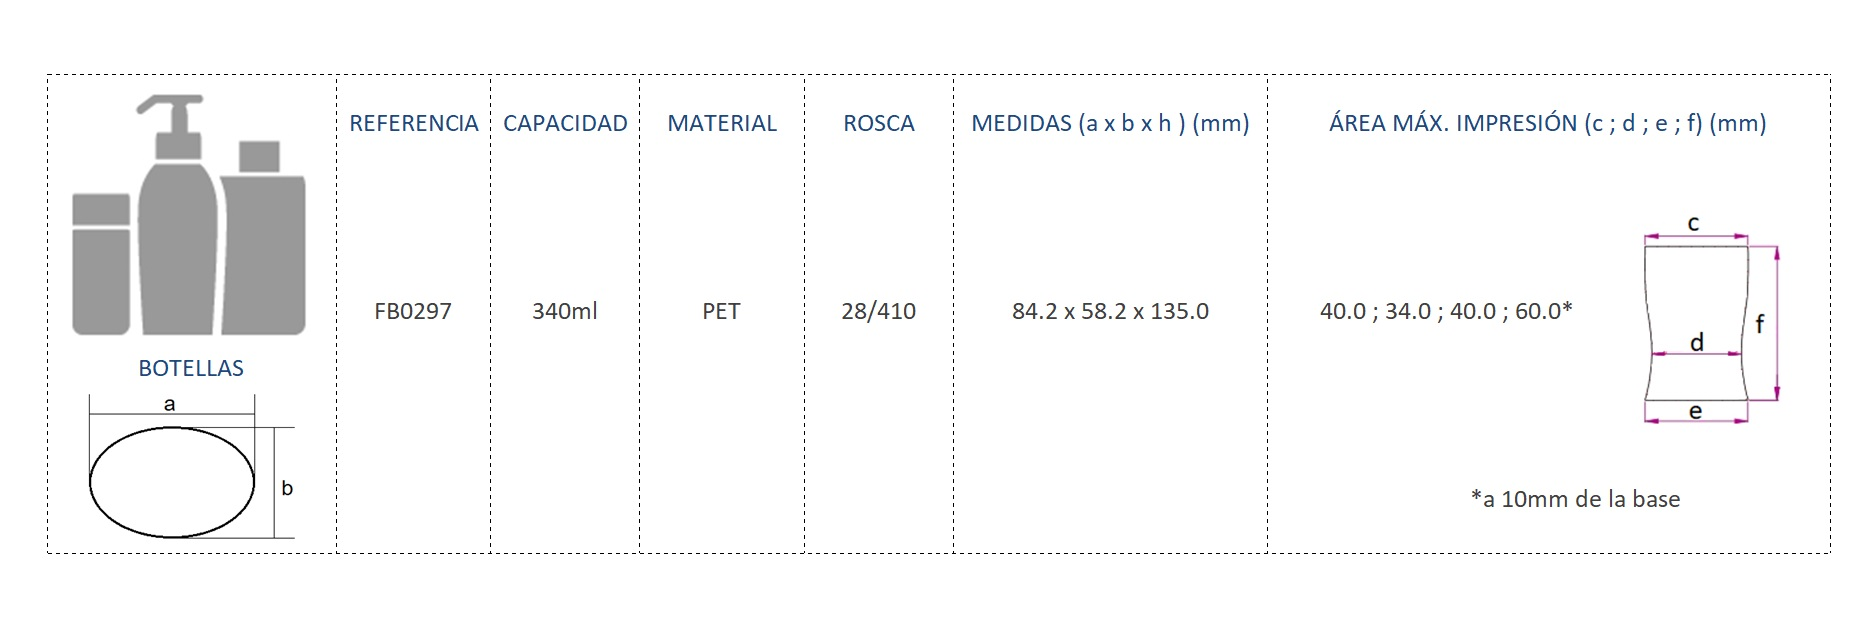 Cuadro de materiales botella FB0297